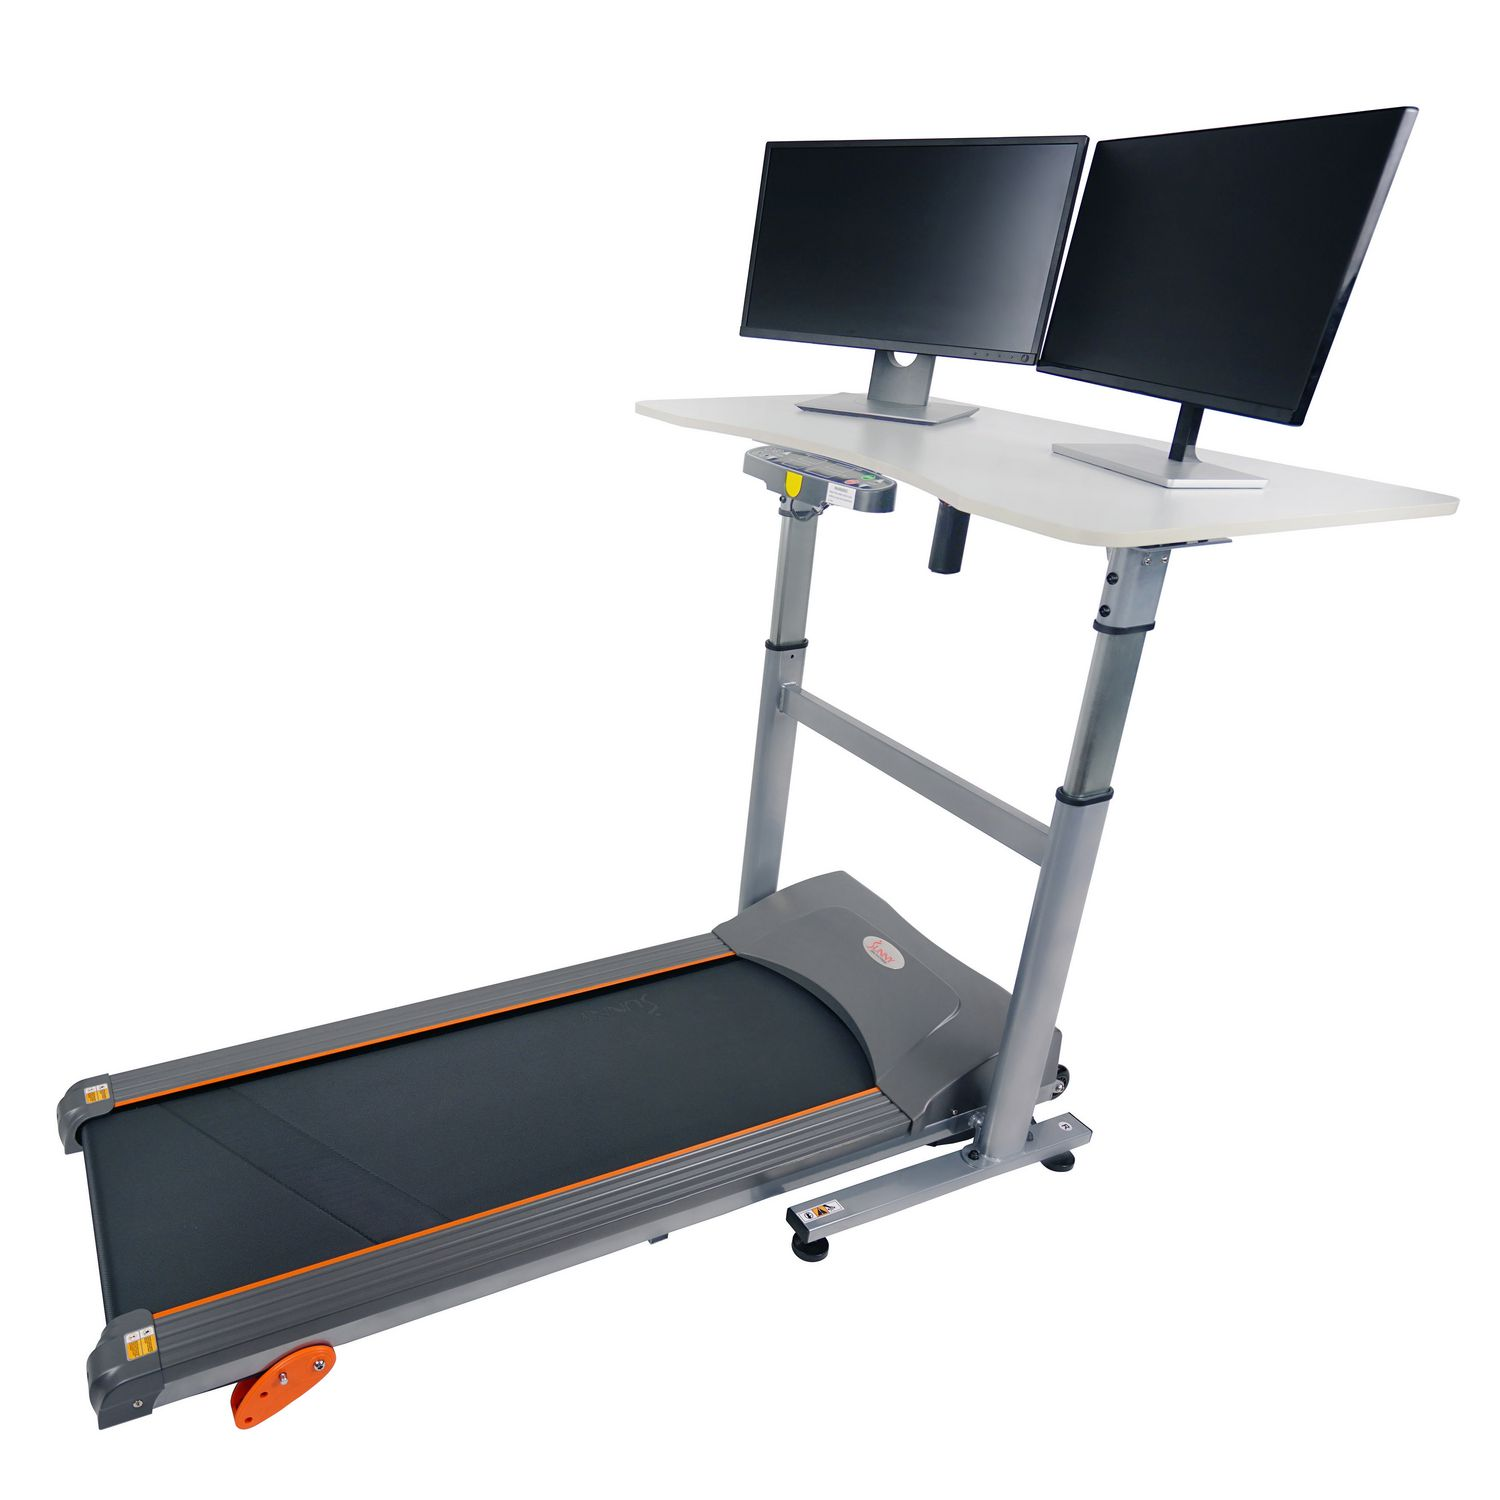 complete exercise products mat standing locus fatigue seat desk anti workstation focal upright with supply blk bundle cushion equipment